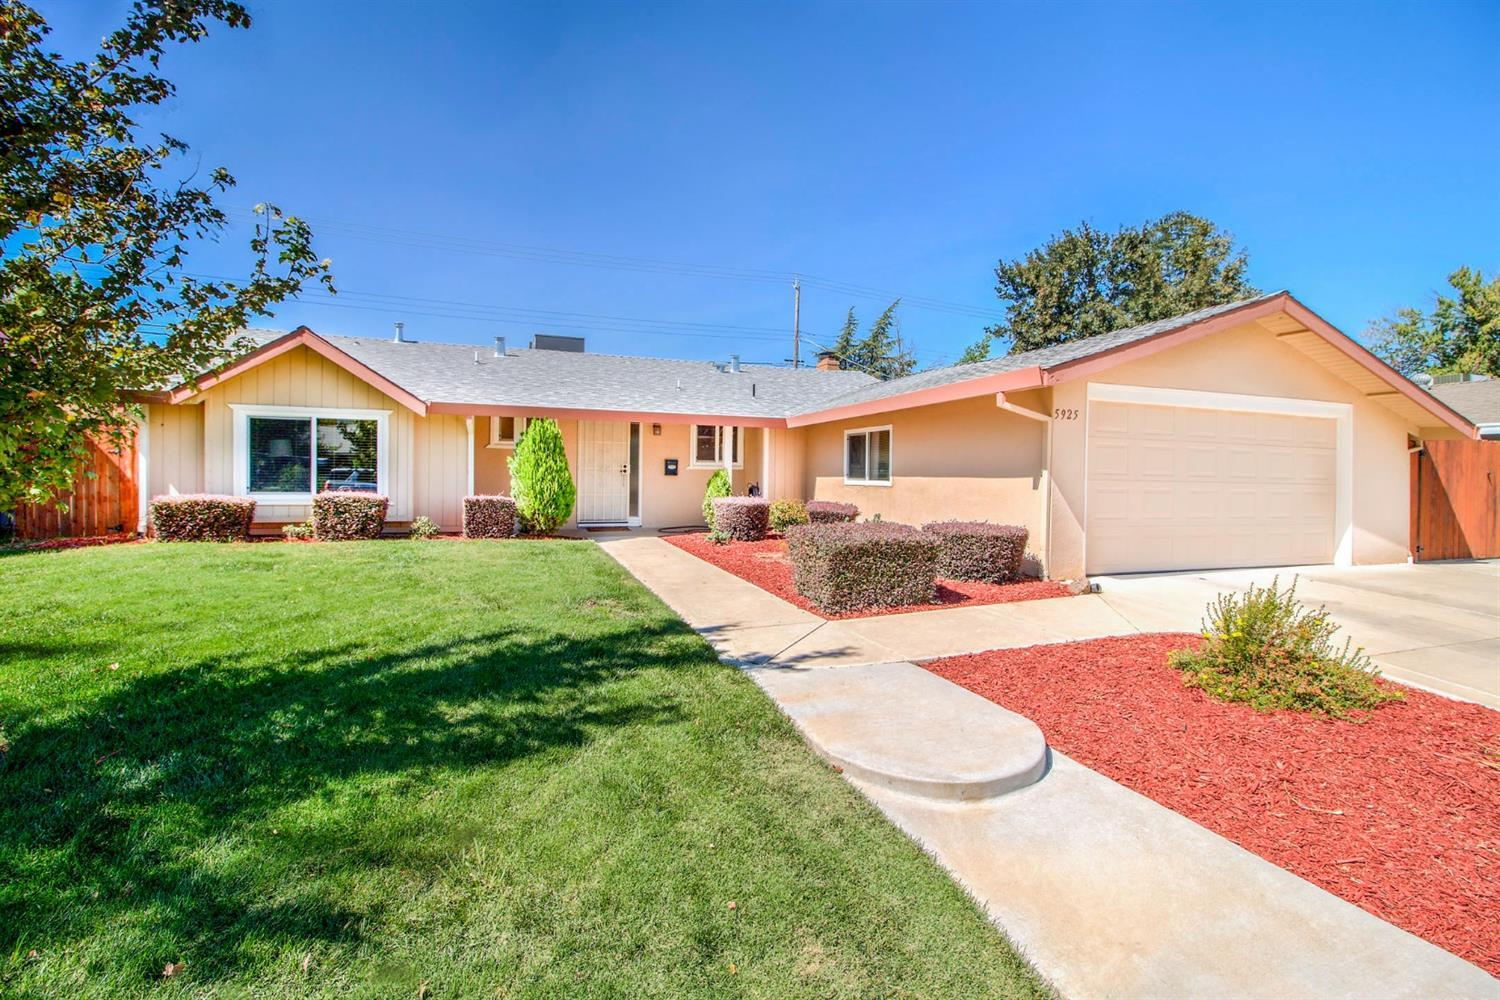 New Homes For Sale In Orangevale